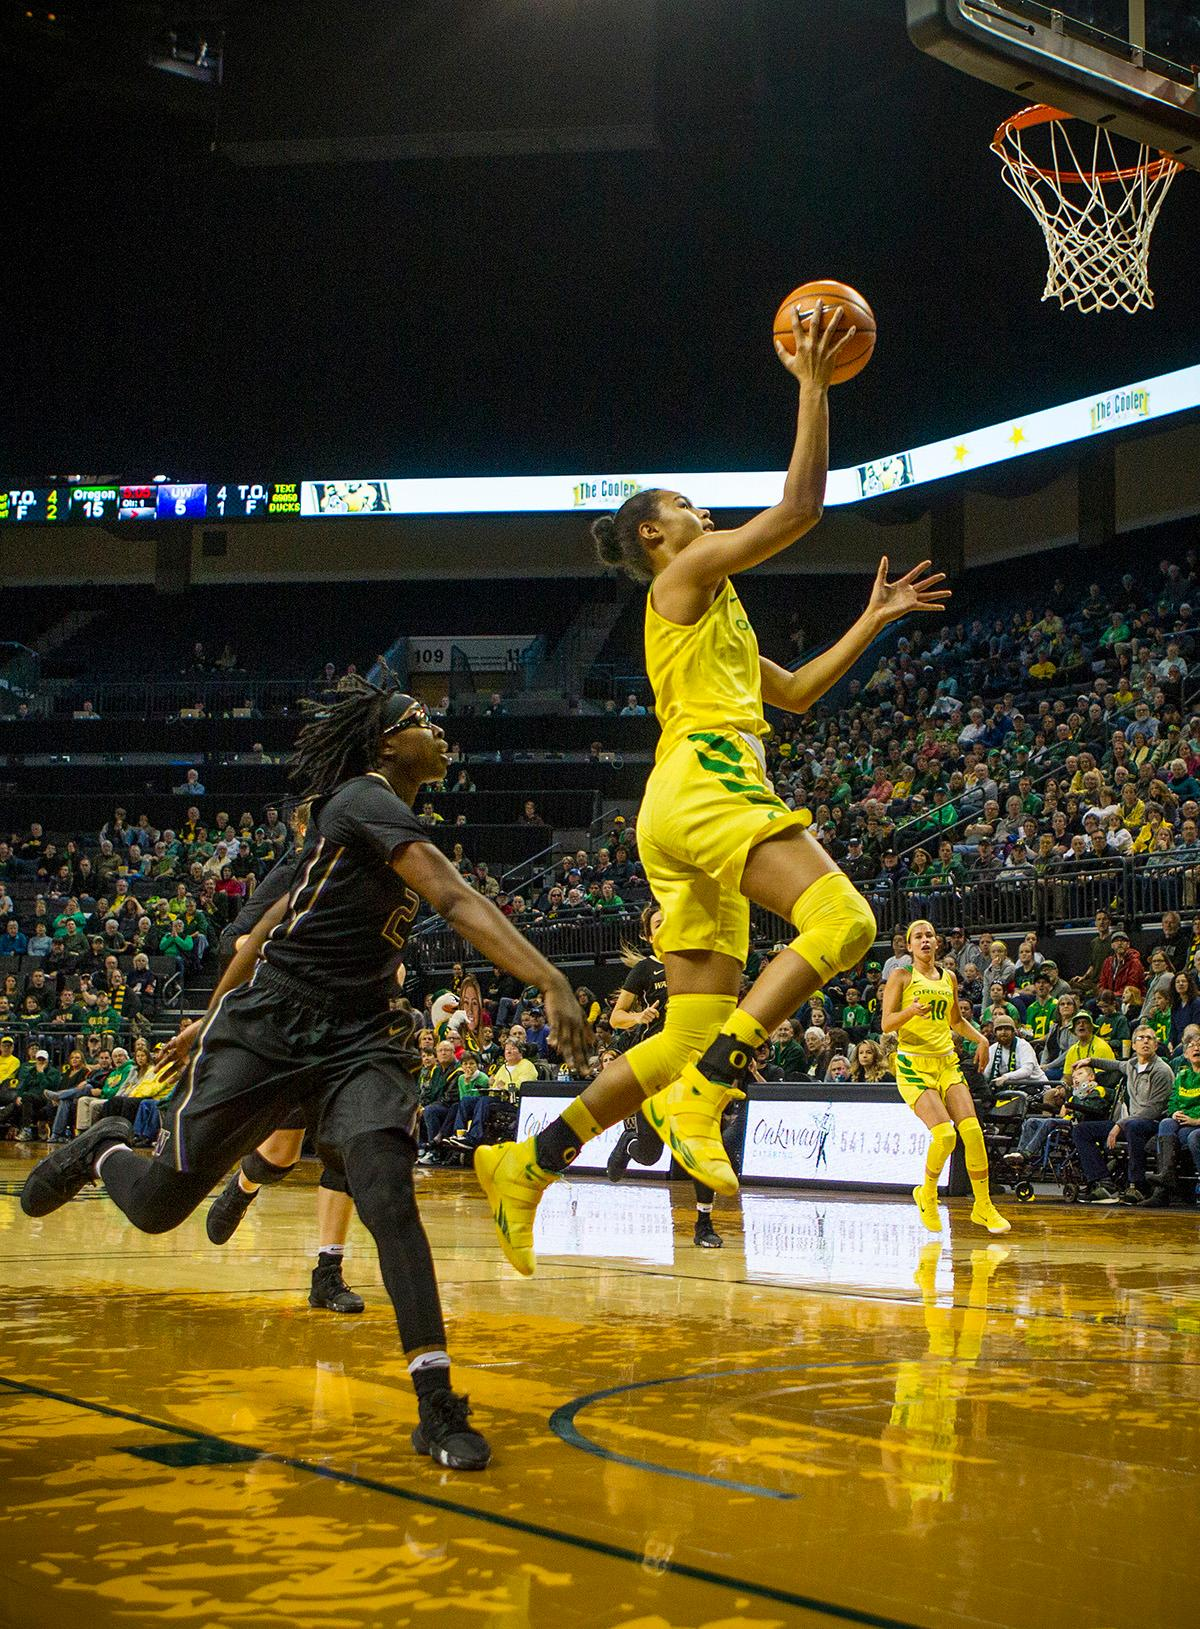 Oregon Ducks Satou Sabally (#0) makes a layup during the first half of the game against the Washington Huskies on Sunday evening. The Oregon Ducks defeated the Washington Huskies 94-83 on Sunday at Matthew Knight Arena. The victory was Head Coach Kelly Graves' 500th career win. Sabrina Ionescu also set the new NCAA all time record of 8 triple doubles in just 48 games. The previous record was 7 triple doubles in 124 games, held by Susie McConnell at Penn State. The Ducks will next face off against USC on Friday January 5th in Los Angeles. Photo by Rhianna Gelhart, Oregon News Lab